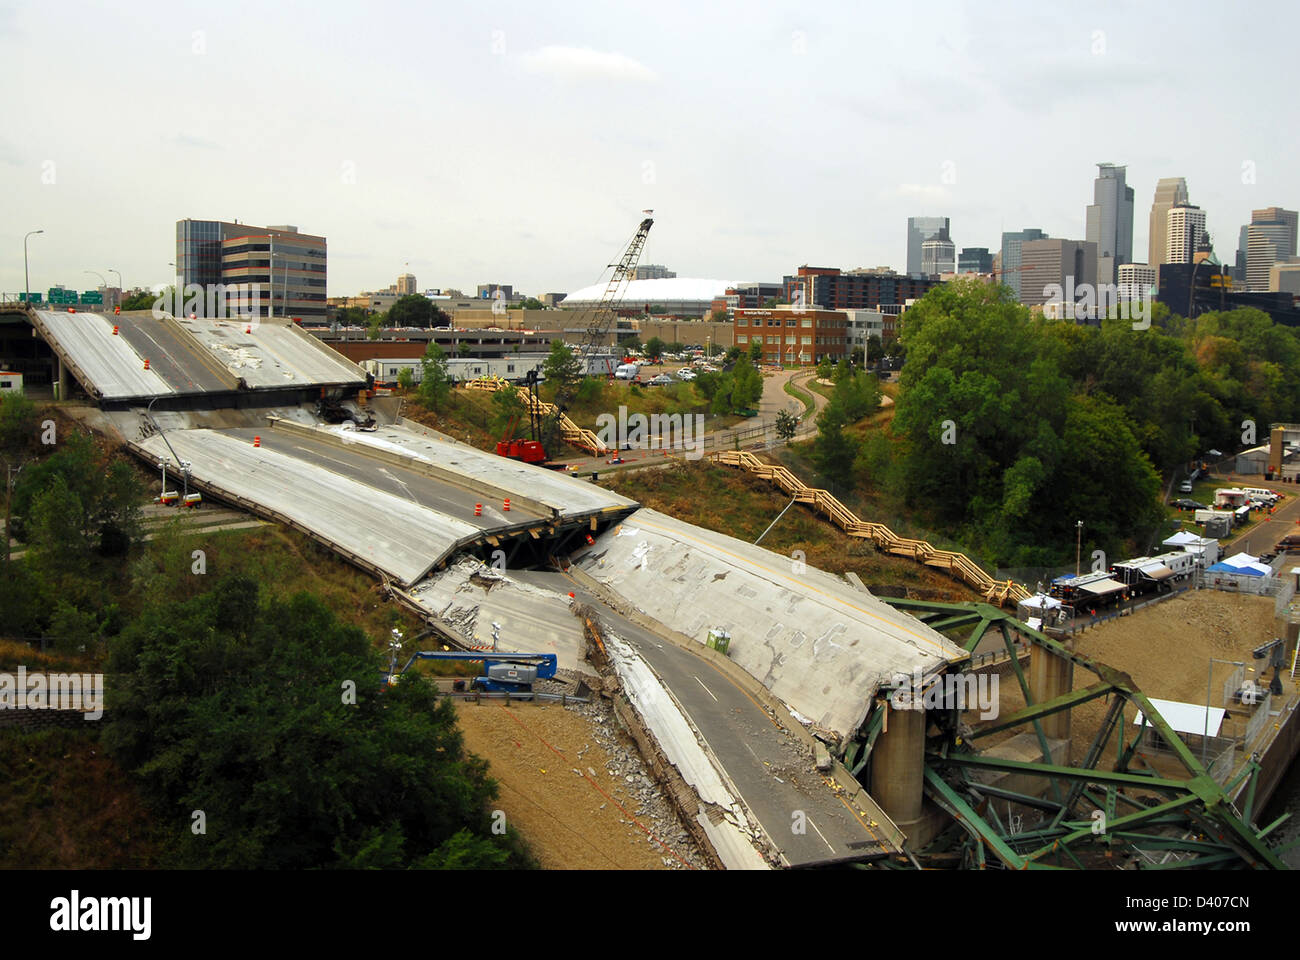 View of the remains of the I-35 bridge collapse August 14, 2007 in Minneapolis, MN. The bridge suddenly collapsed - Stock Image